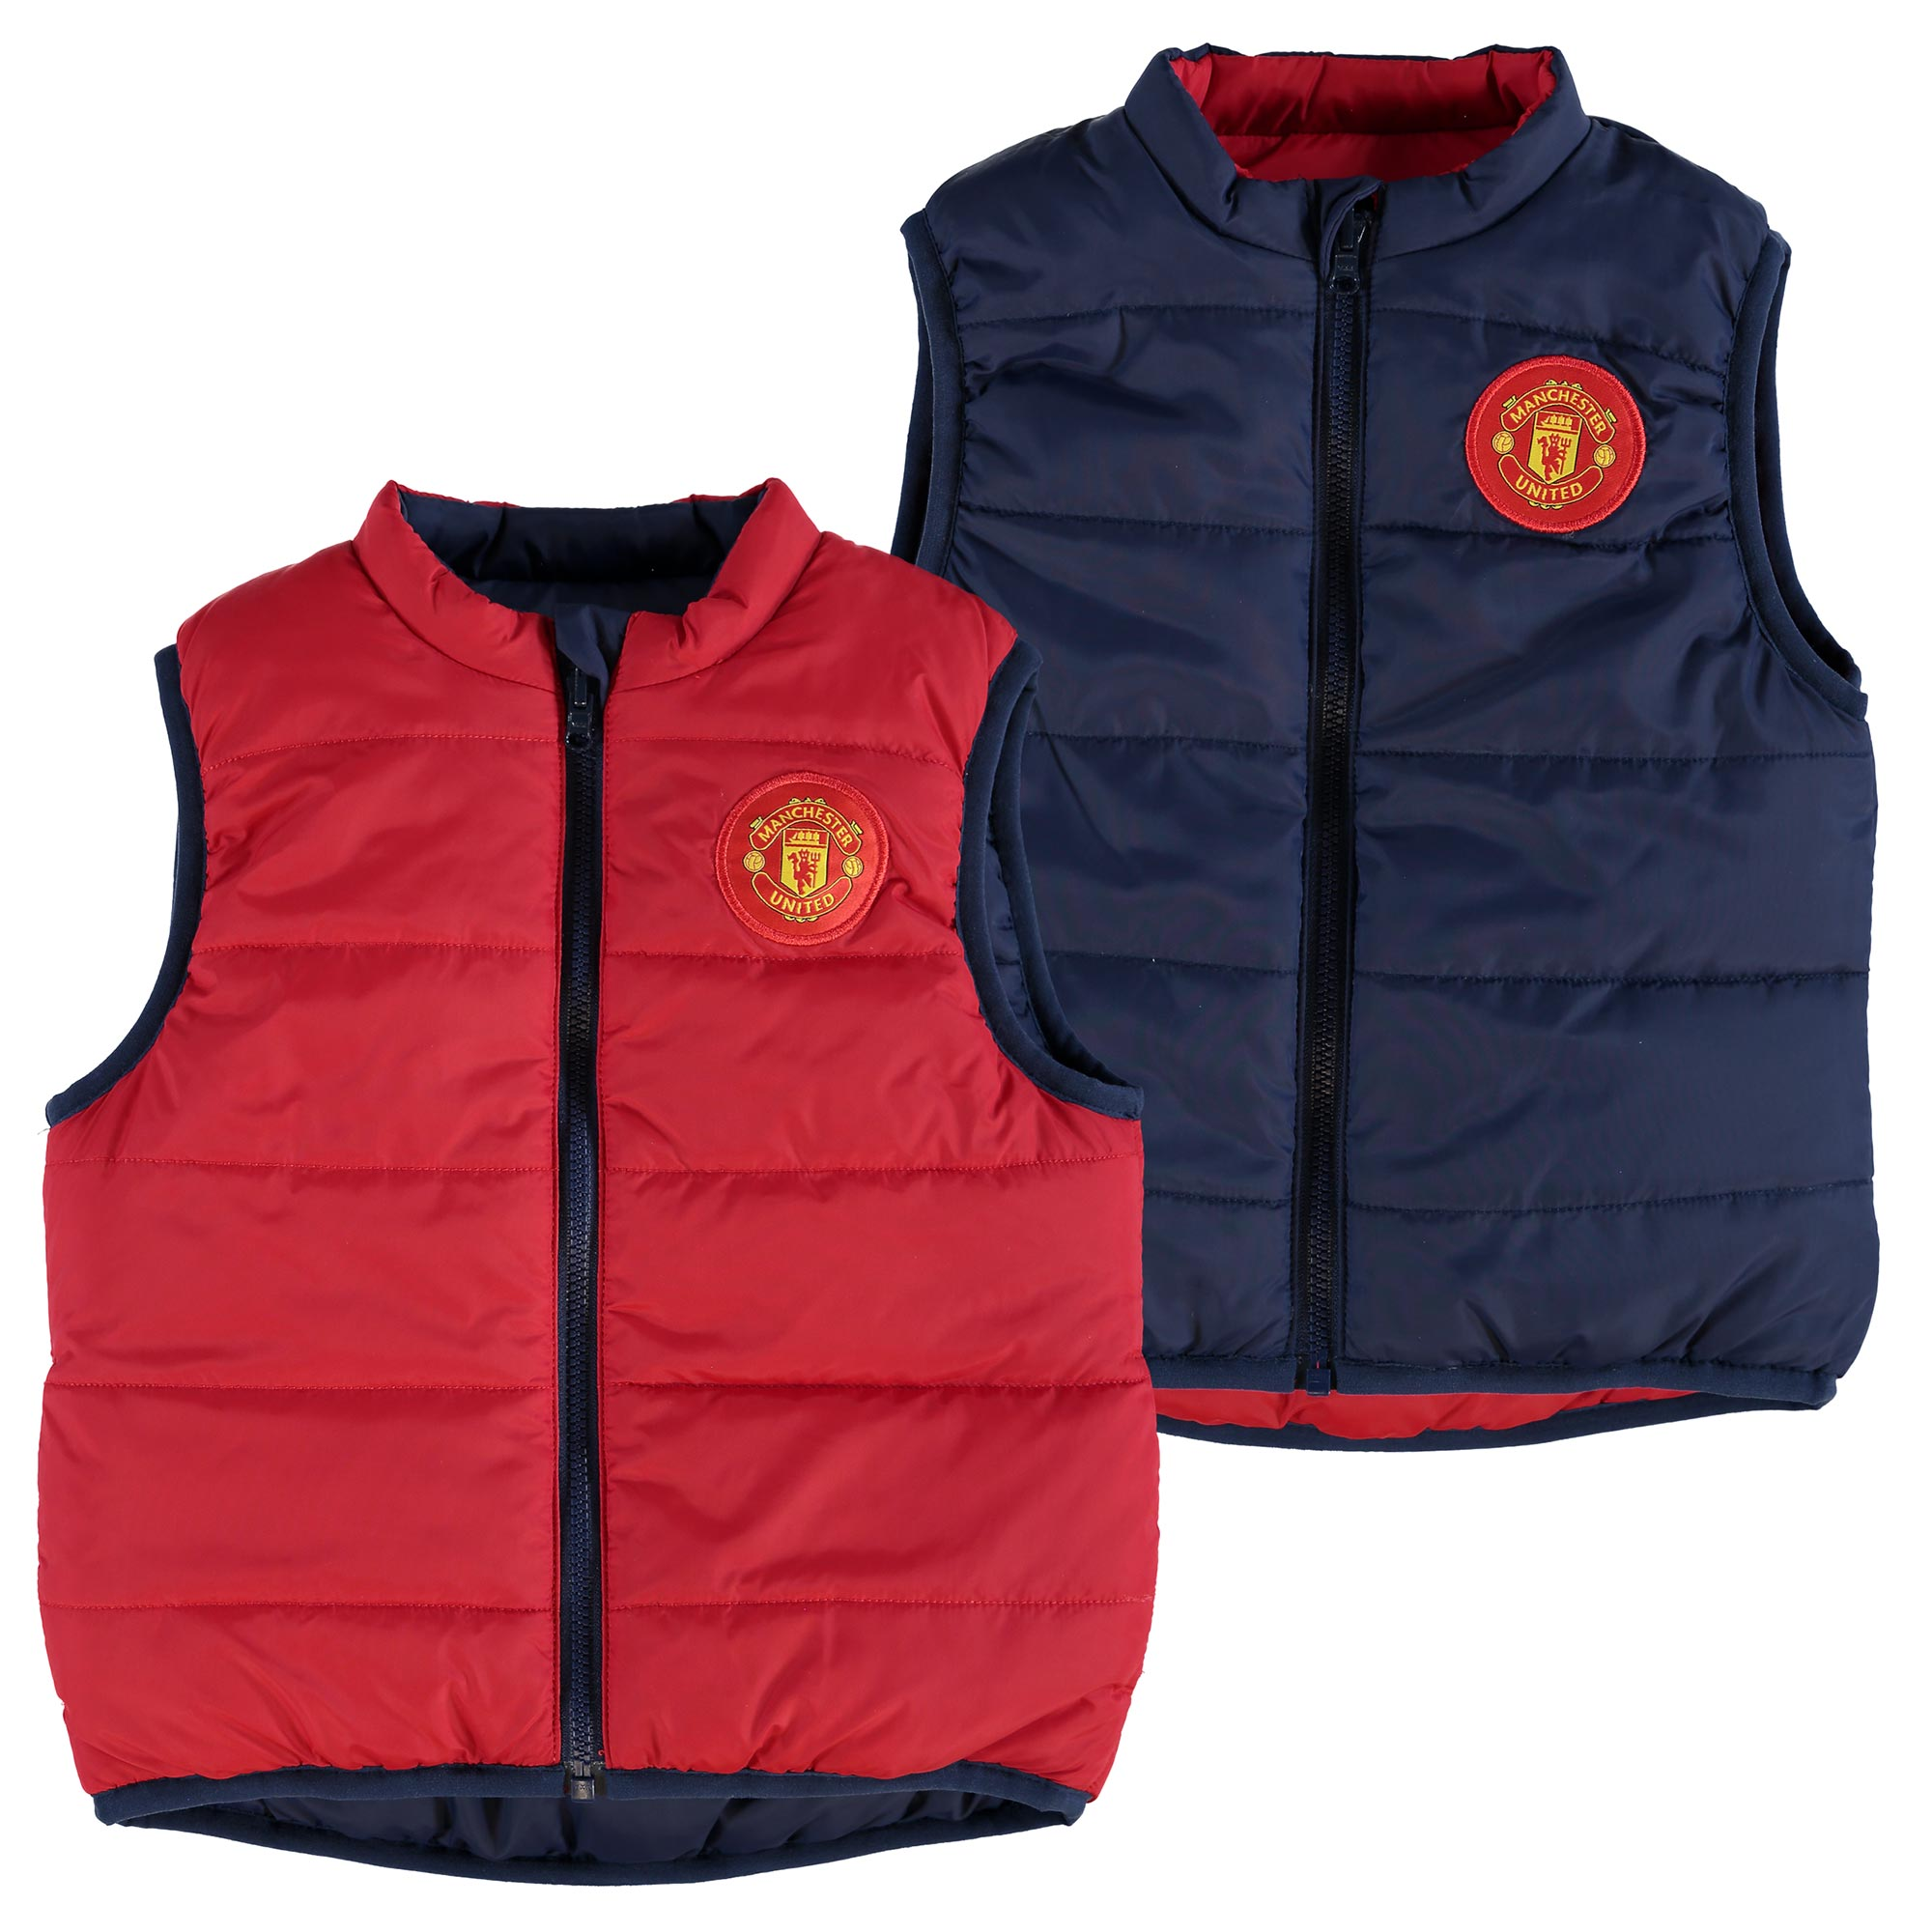 Manchester United Reversible Gilet - Red/Navy - Baby